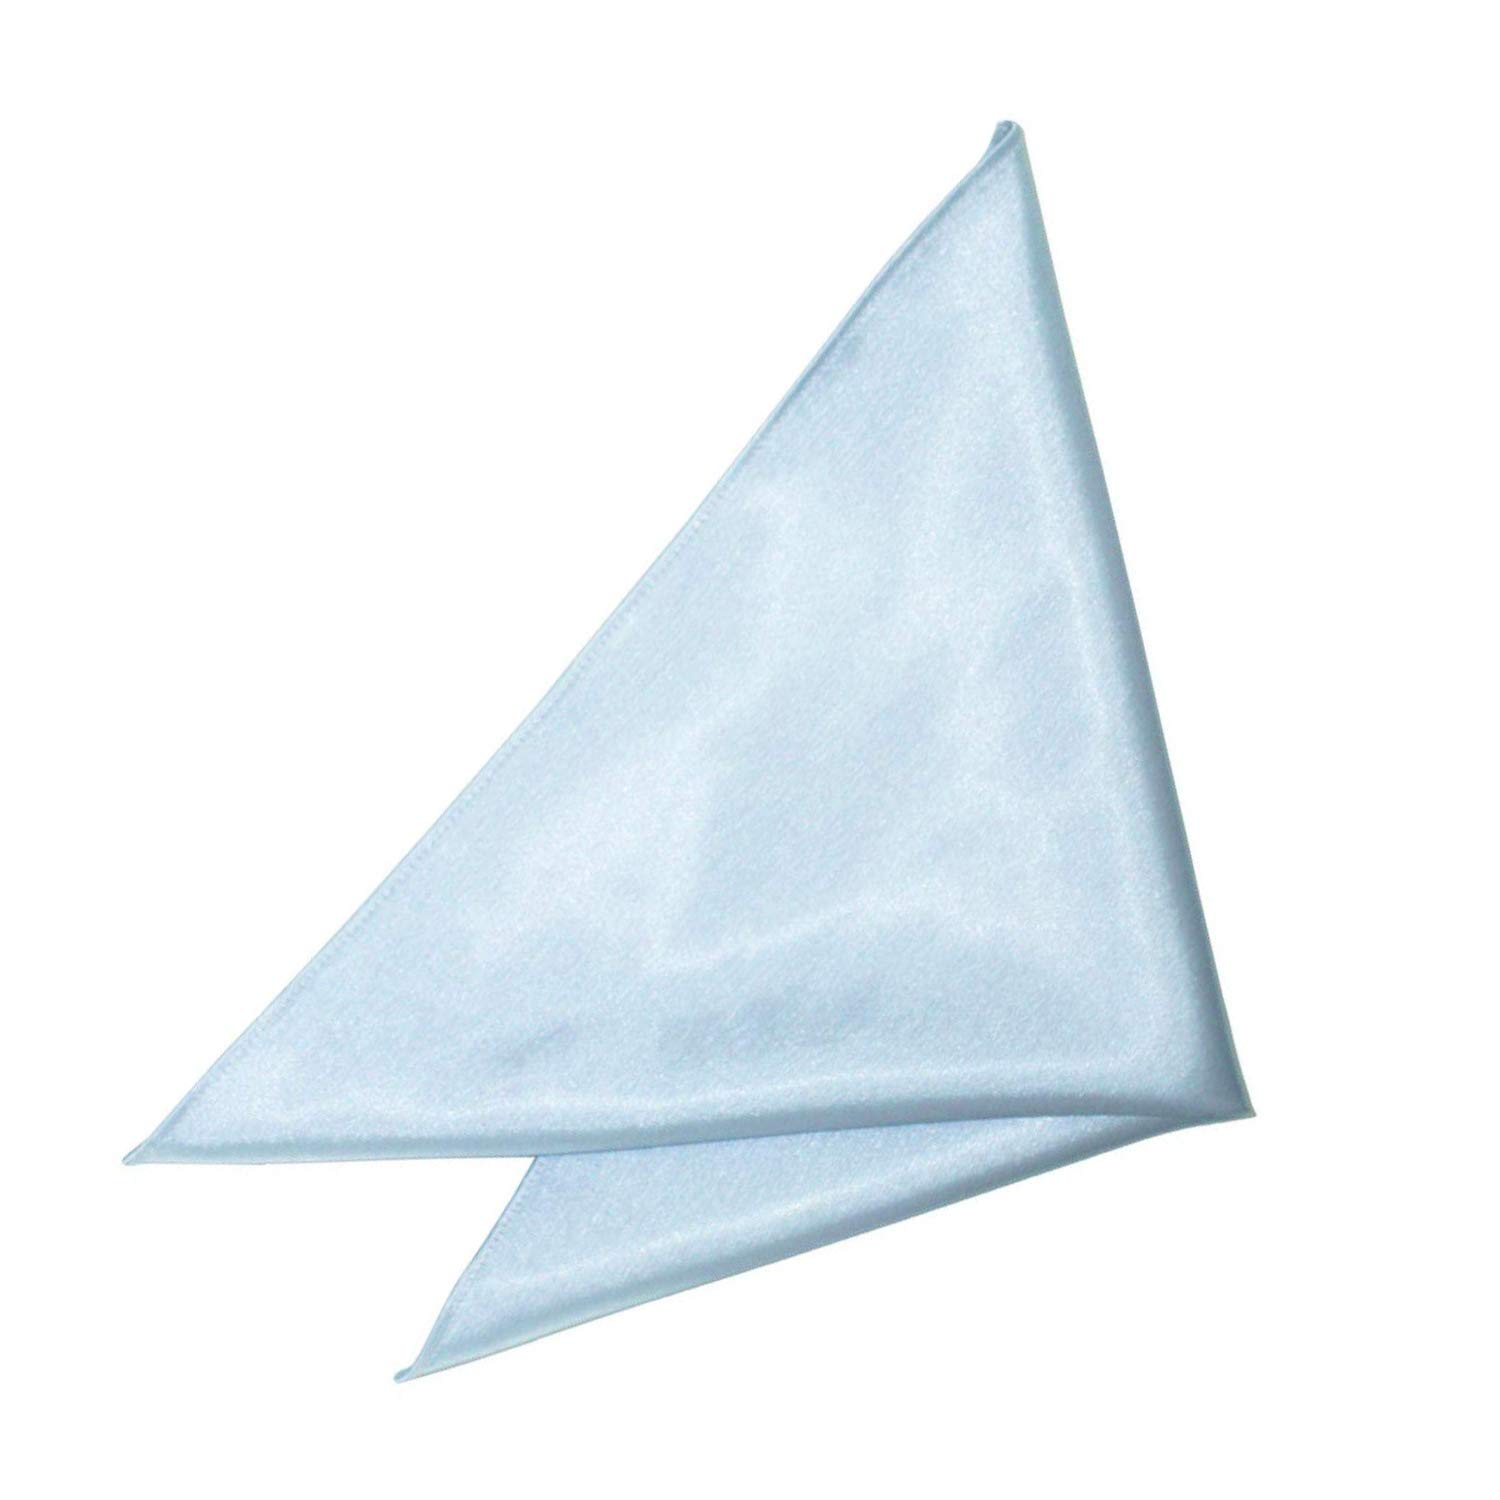 Satin Handkerchief for Men -Italian Square Pocket Hanky for Weddings, Prom and Parties - Soft Polyester Kerchief for Special and Formal Occasions - Elegant Accessory with Solid Plain Colour Design